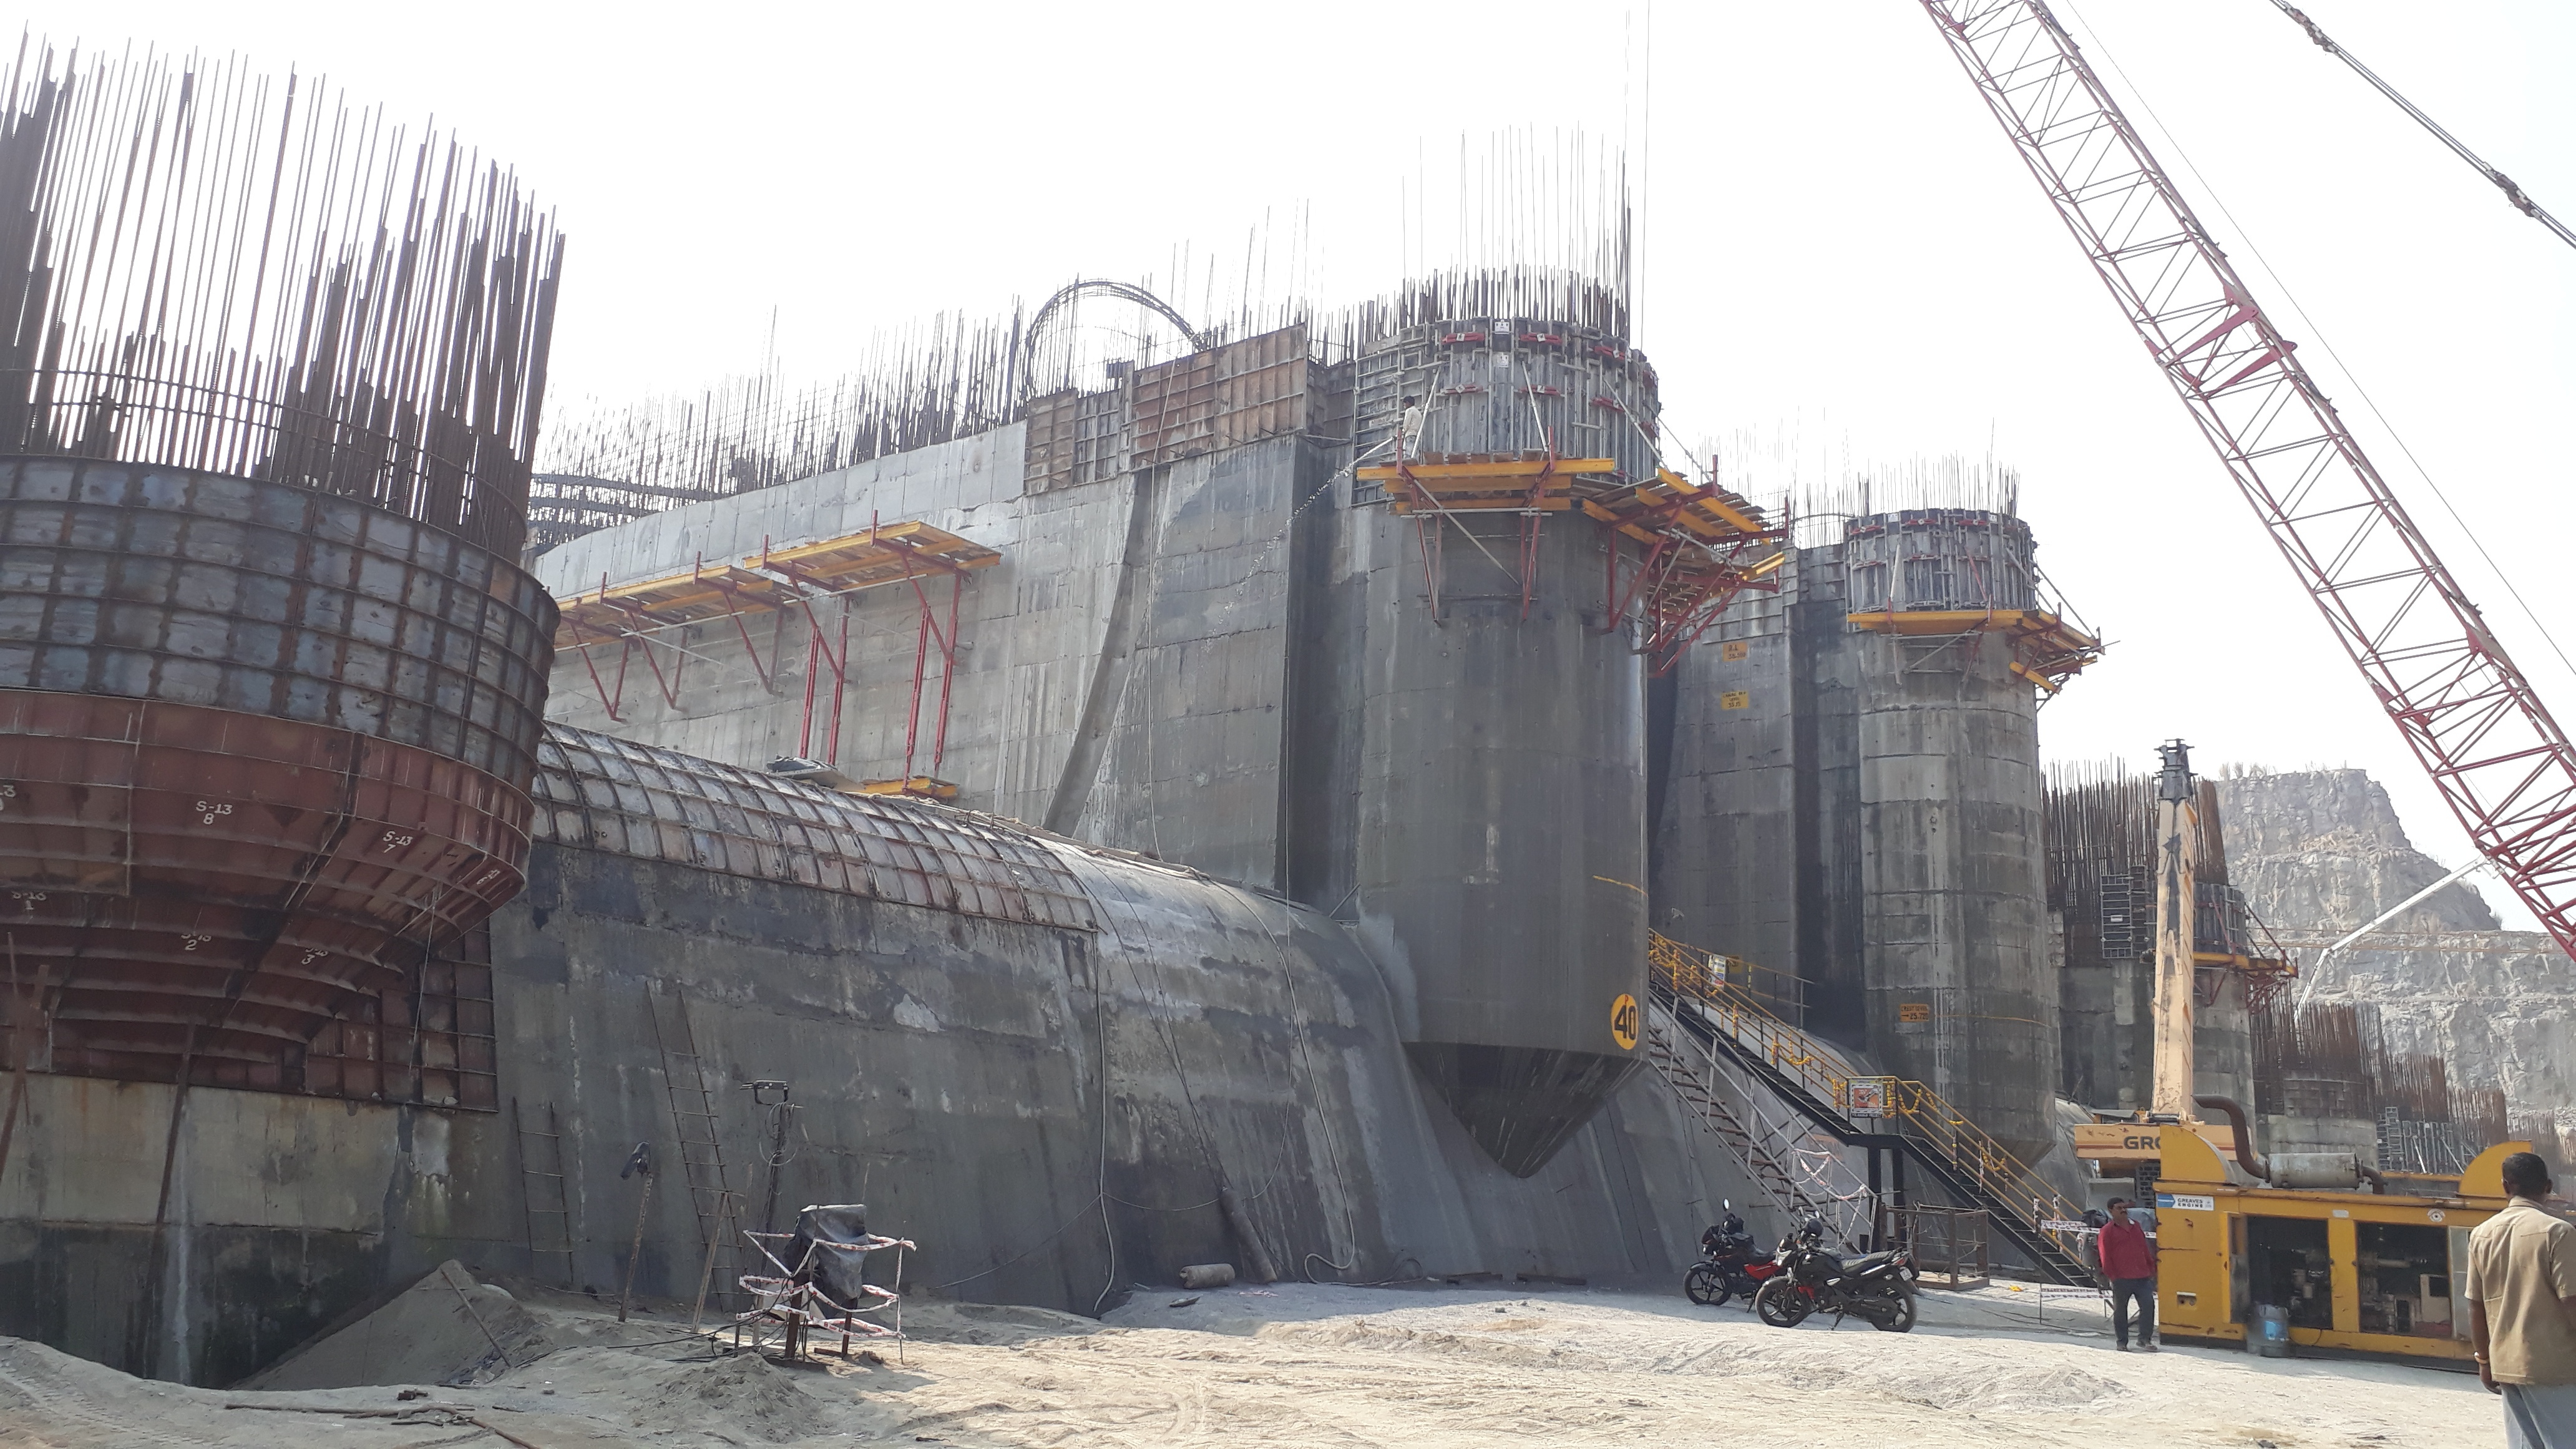 Under construction Polavaram dam on Godavari River. The amount has been released even as the state was awaiting disbursal of over Rs 3,000 crore by the Centre which has agreed to bear the entire cost of over Rs 55,500 crore for the project, a top official of the water resources department said.